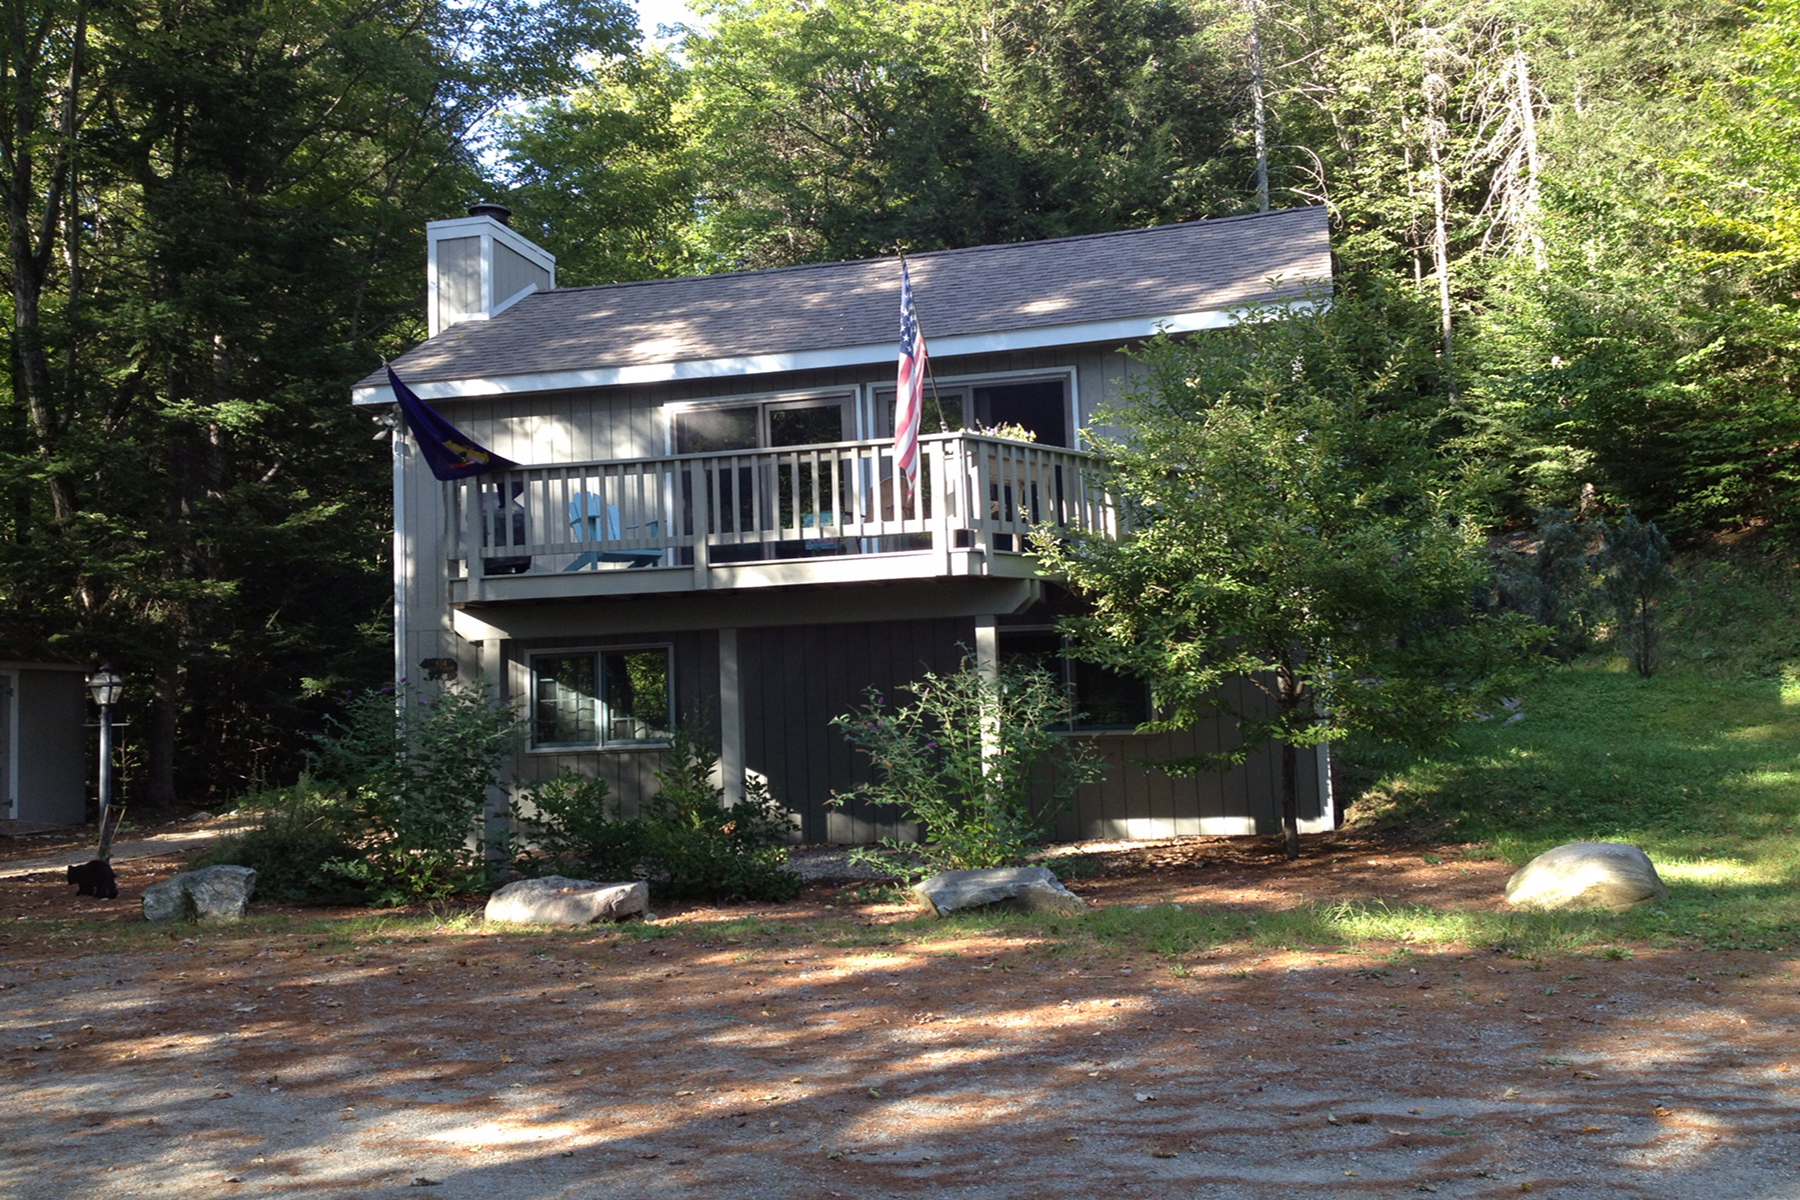 single family homes for Sale at 634 Derry Woods Road, Londonderry 634 Derry Woods Rd Londonderry, Vermont 05148 United States